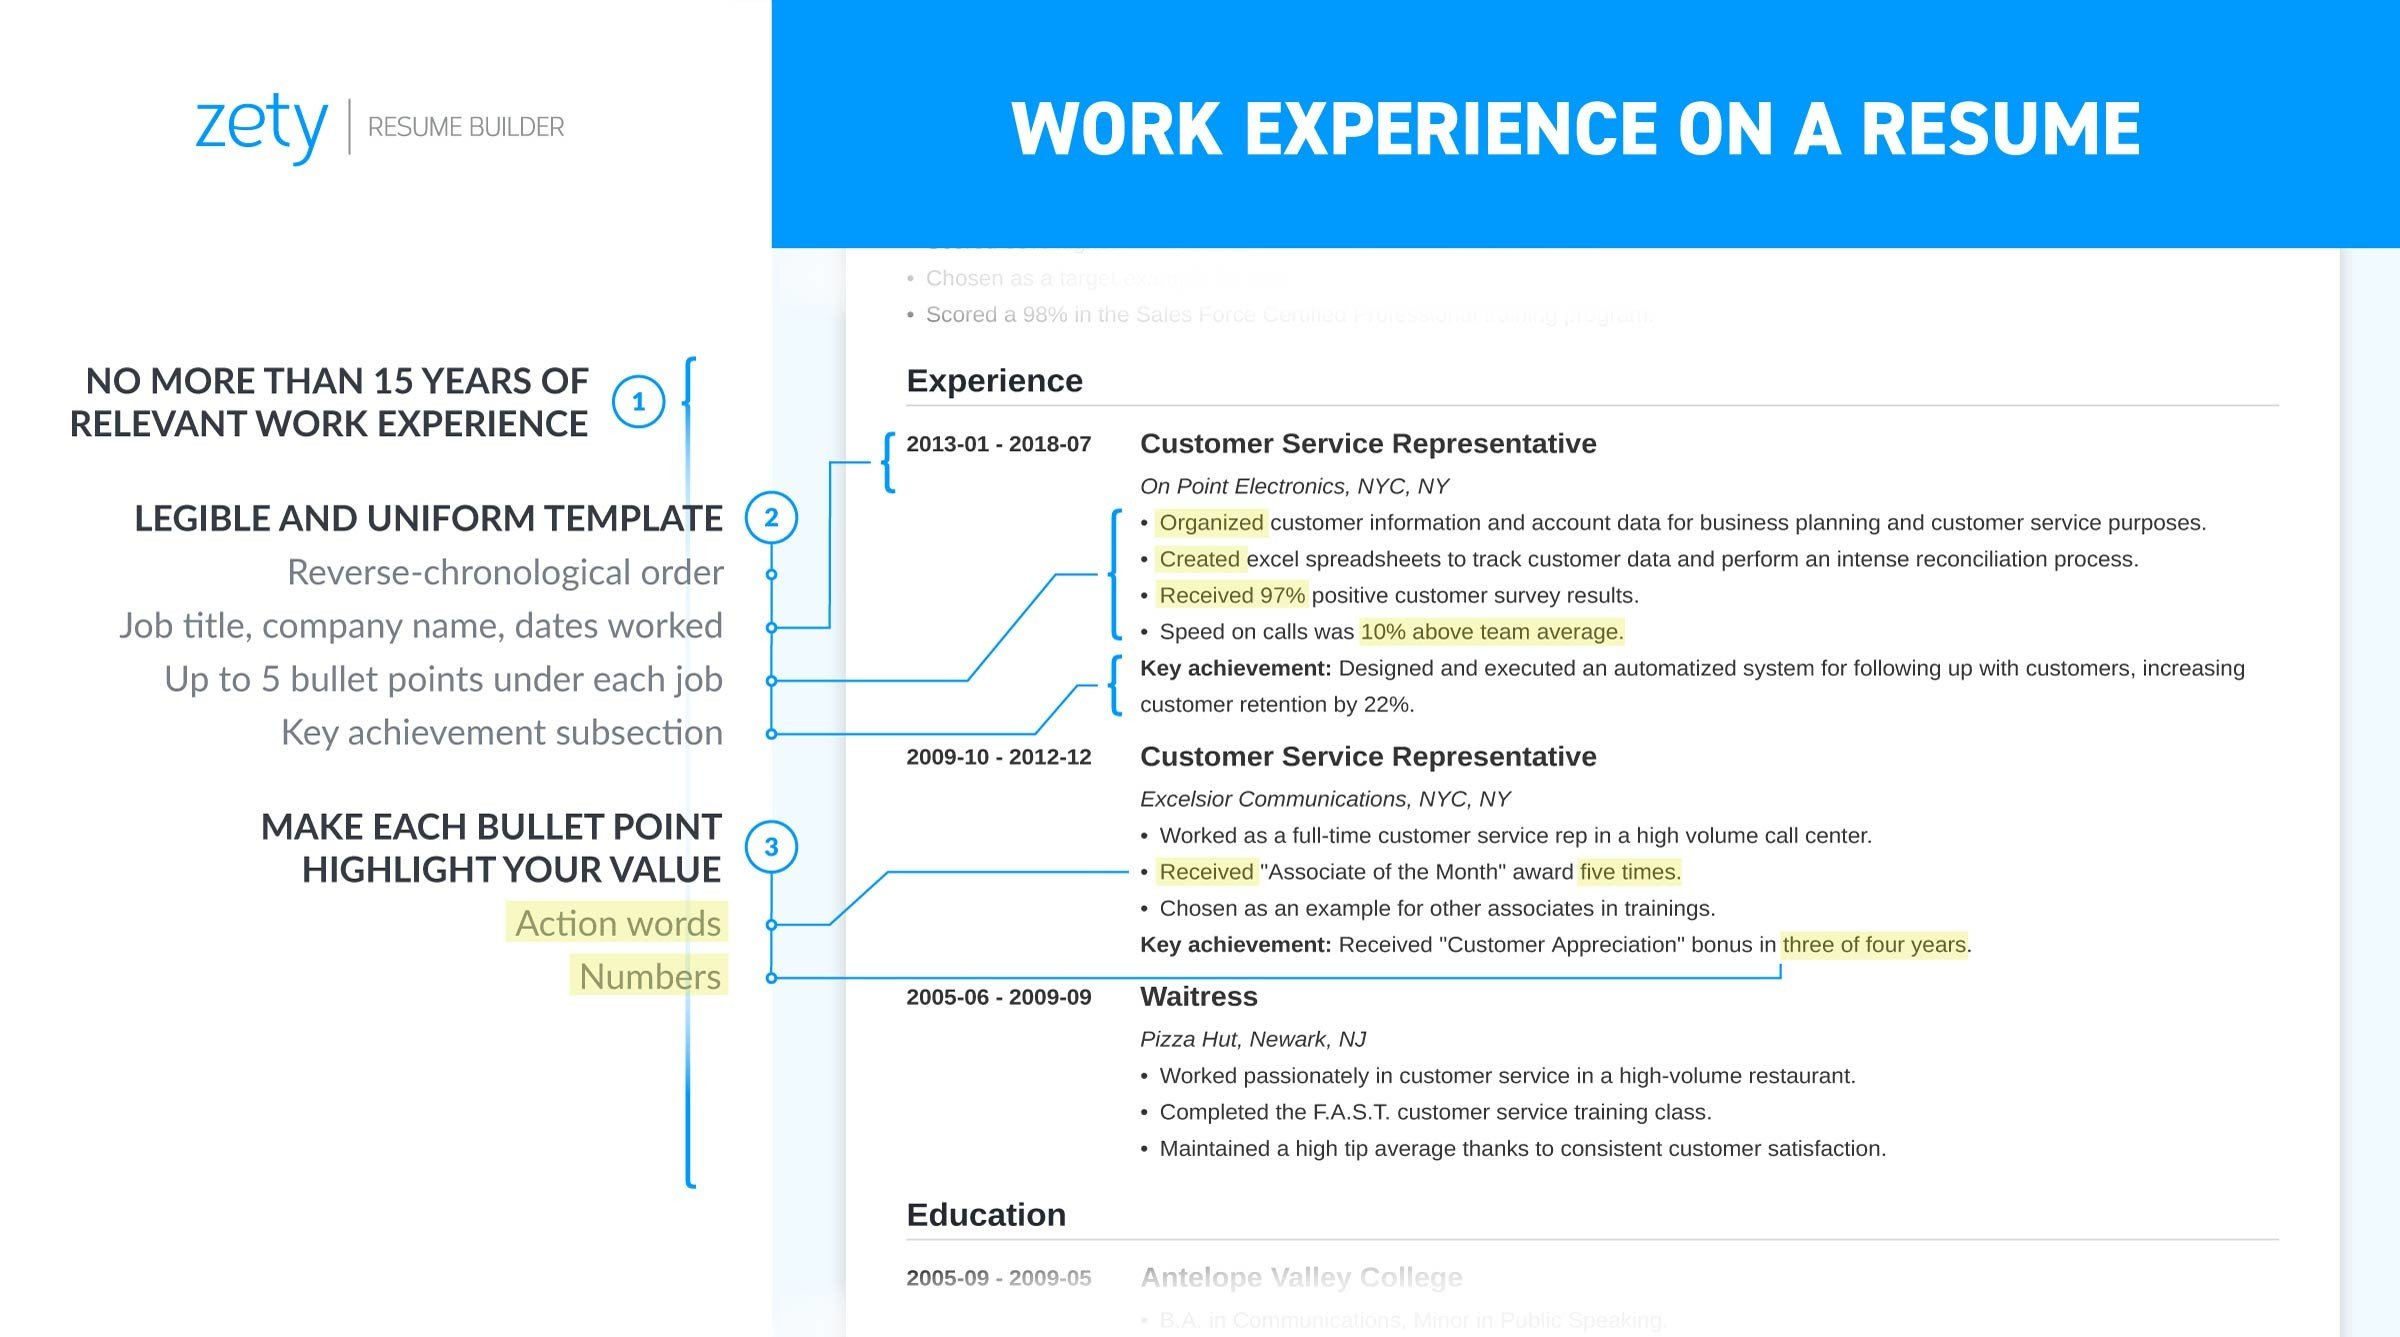 resume work experience history example job descriptions description on gmail software Resume Resume Work Experience Description